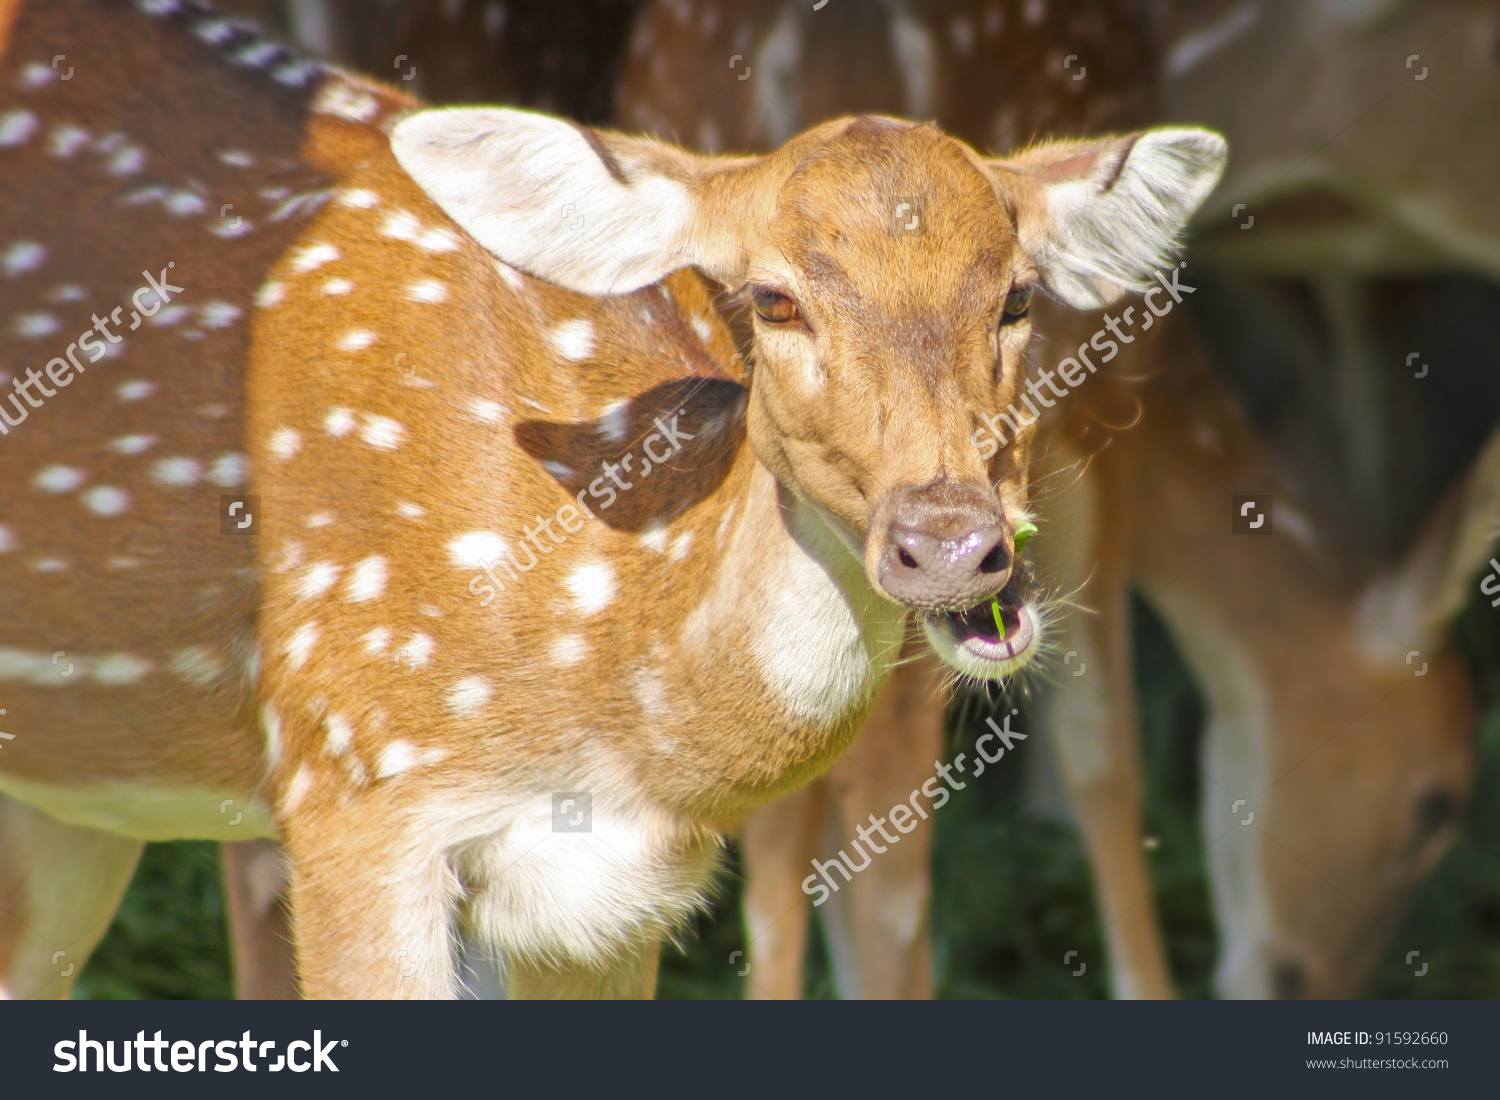 Funny Deer Taken In Zoo, Jaipur, Rajastan, India Stock Photo.